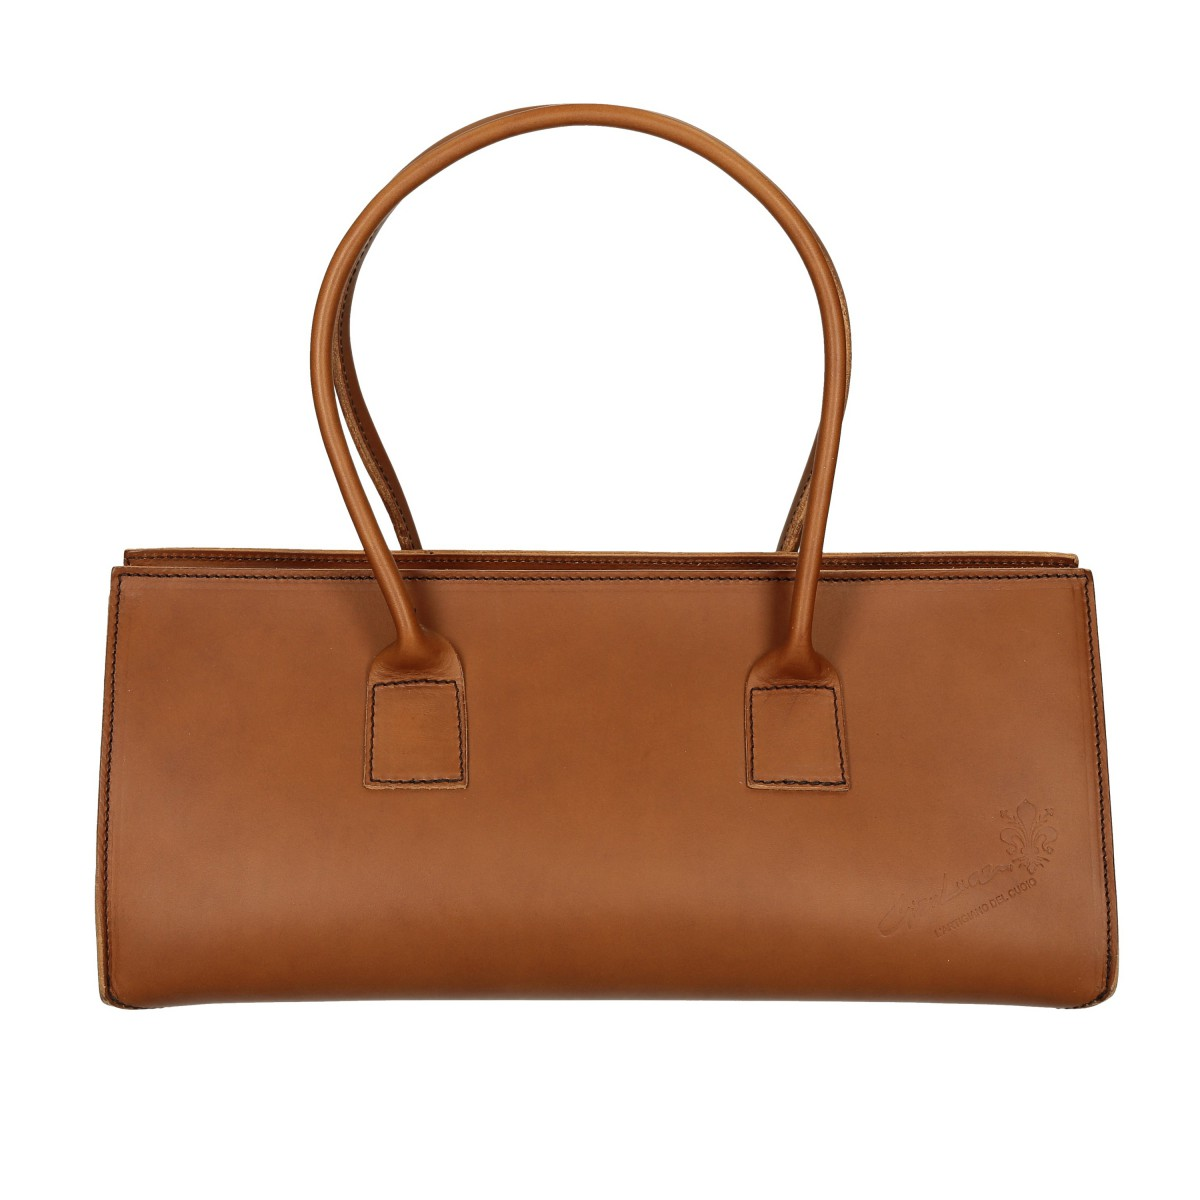 brown leather handbag for handmade in italy